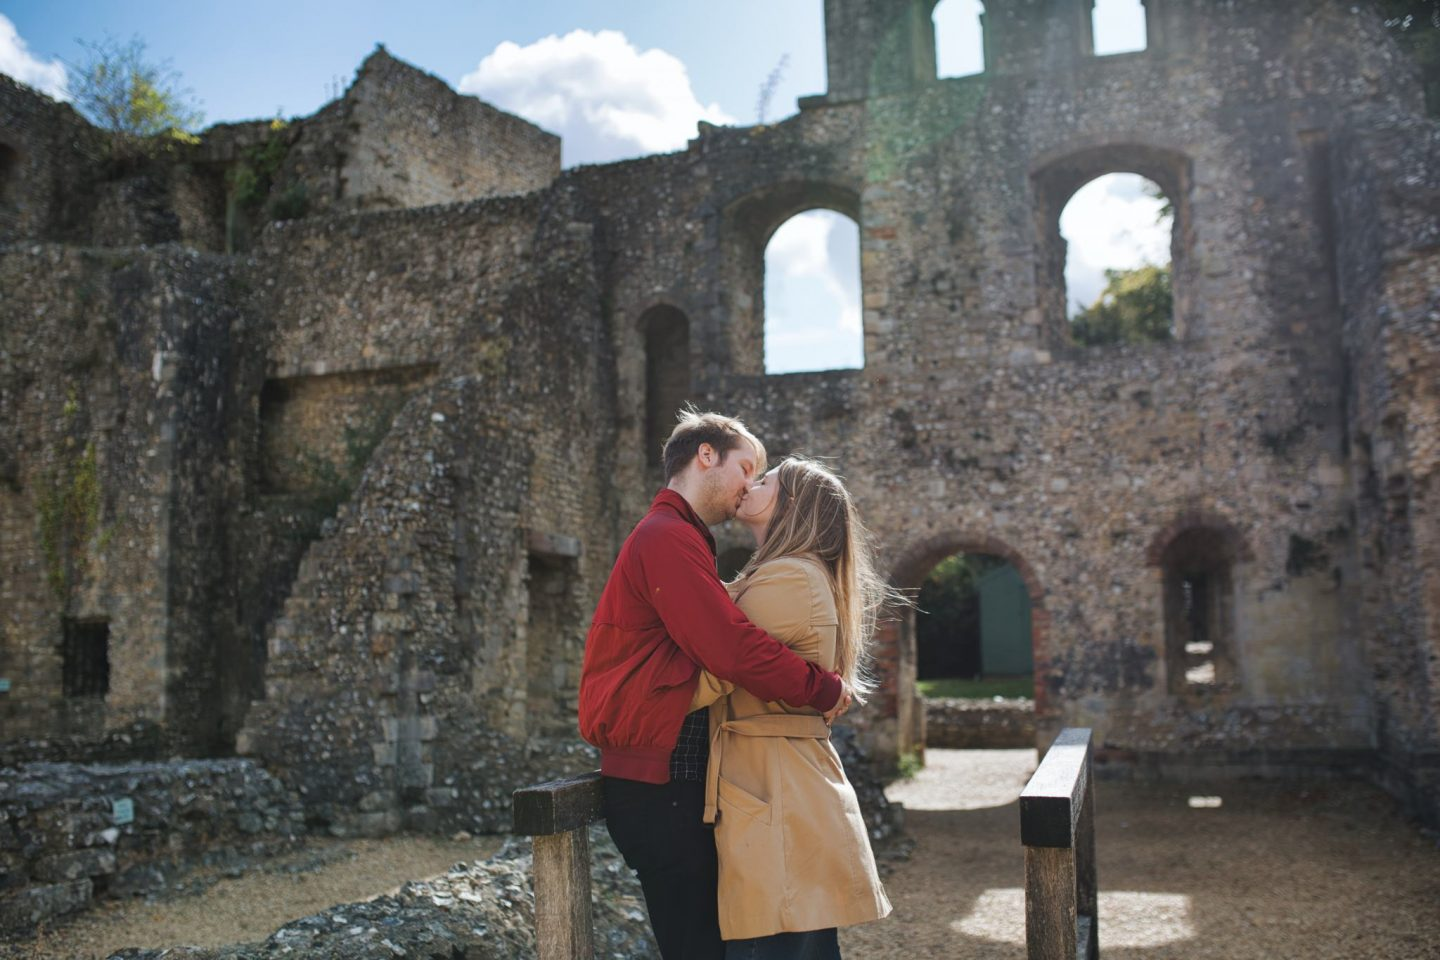 Sophie & Matt engagement shoot Harps Joseph Photography Wolvesey Castle